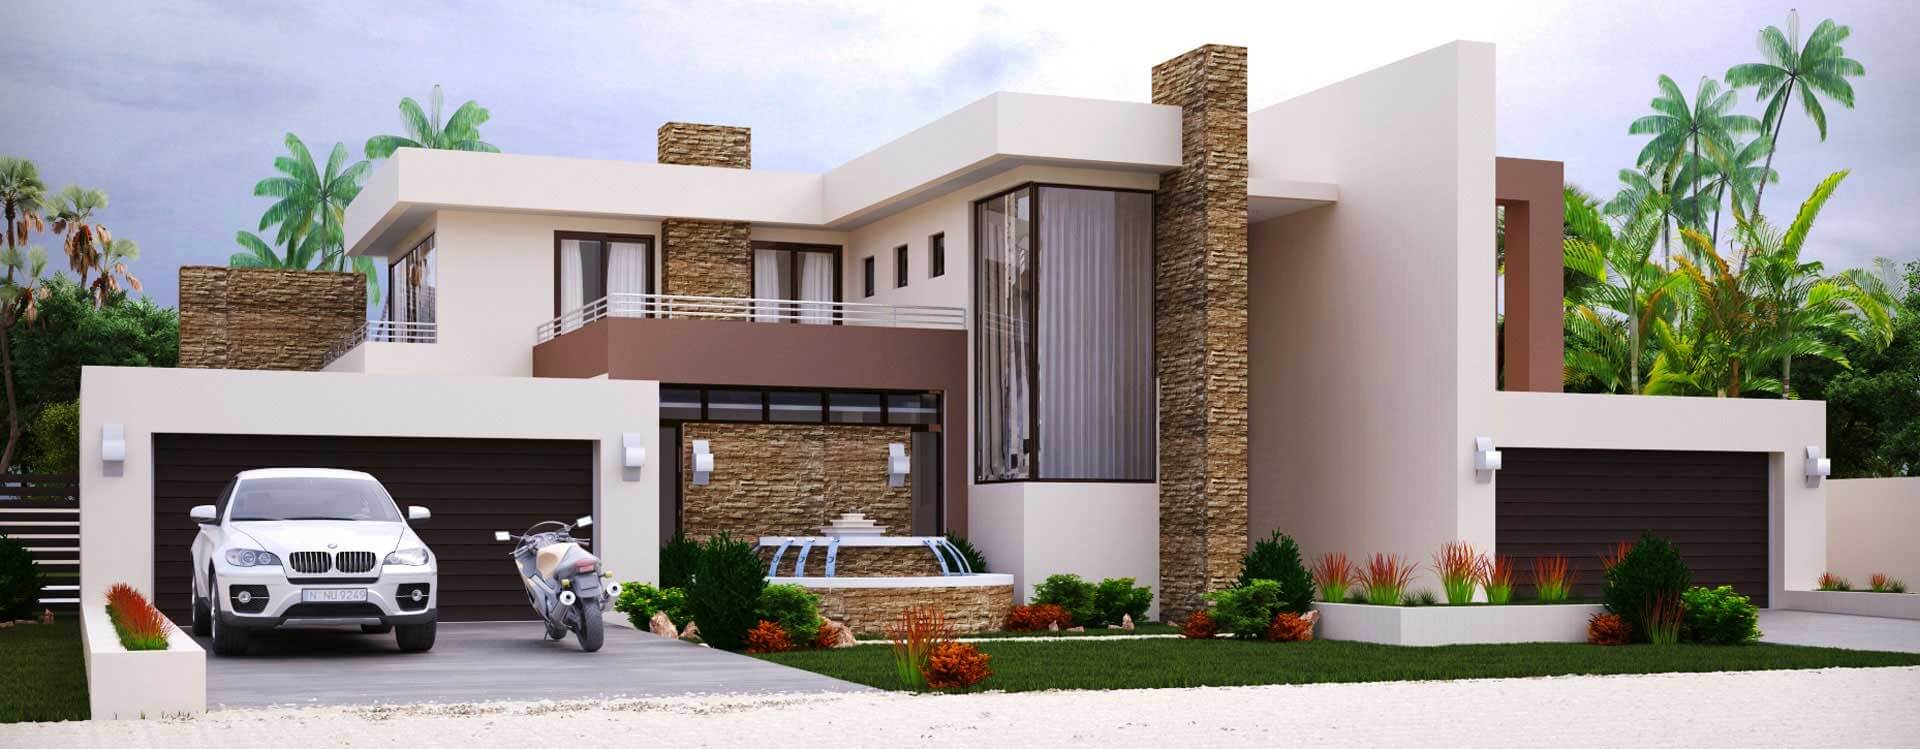 modern style house plan 4 bedroom double storey floor plans home design - Best House Plans